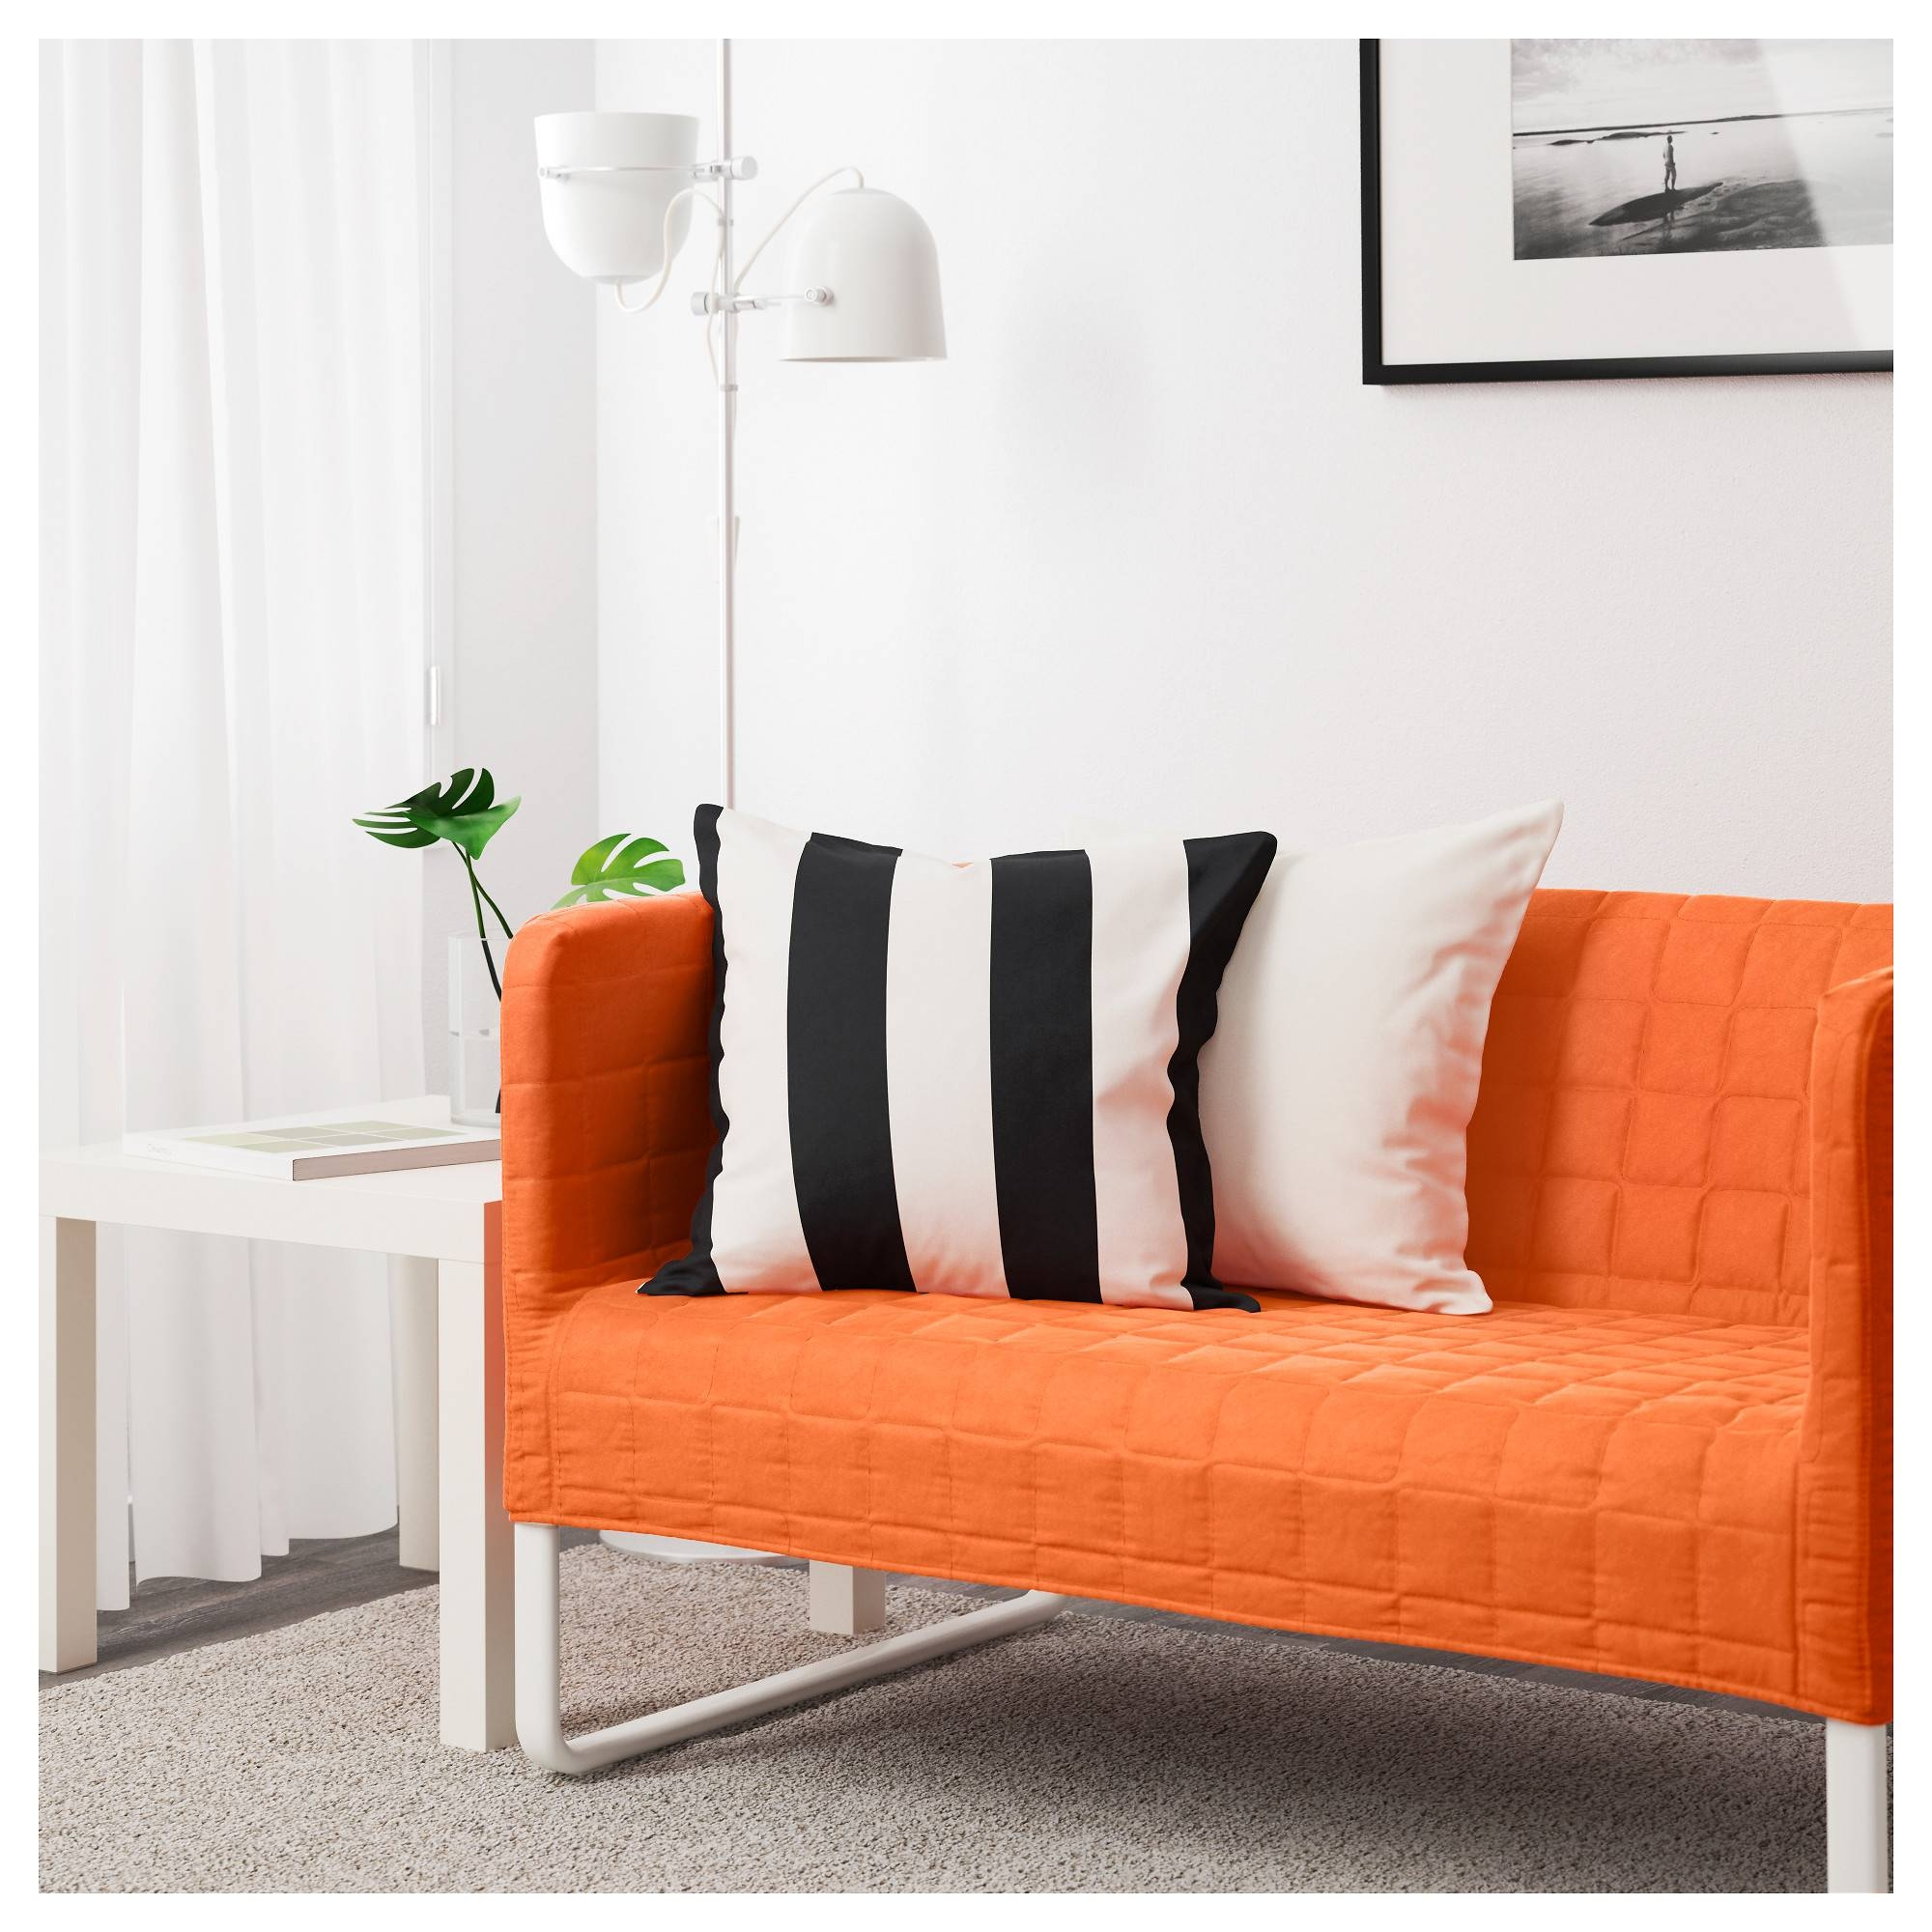 Knopparp 2-Seat Sofa Orange - Ikea with Orange Ikea Sofas (Image 21 of 30)